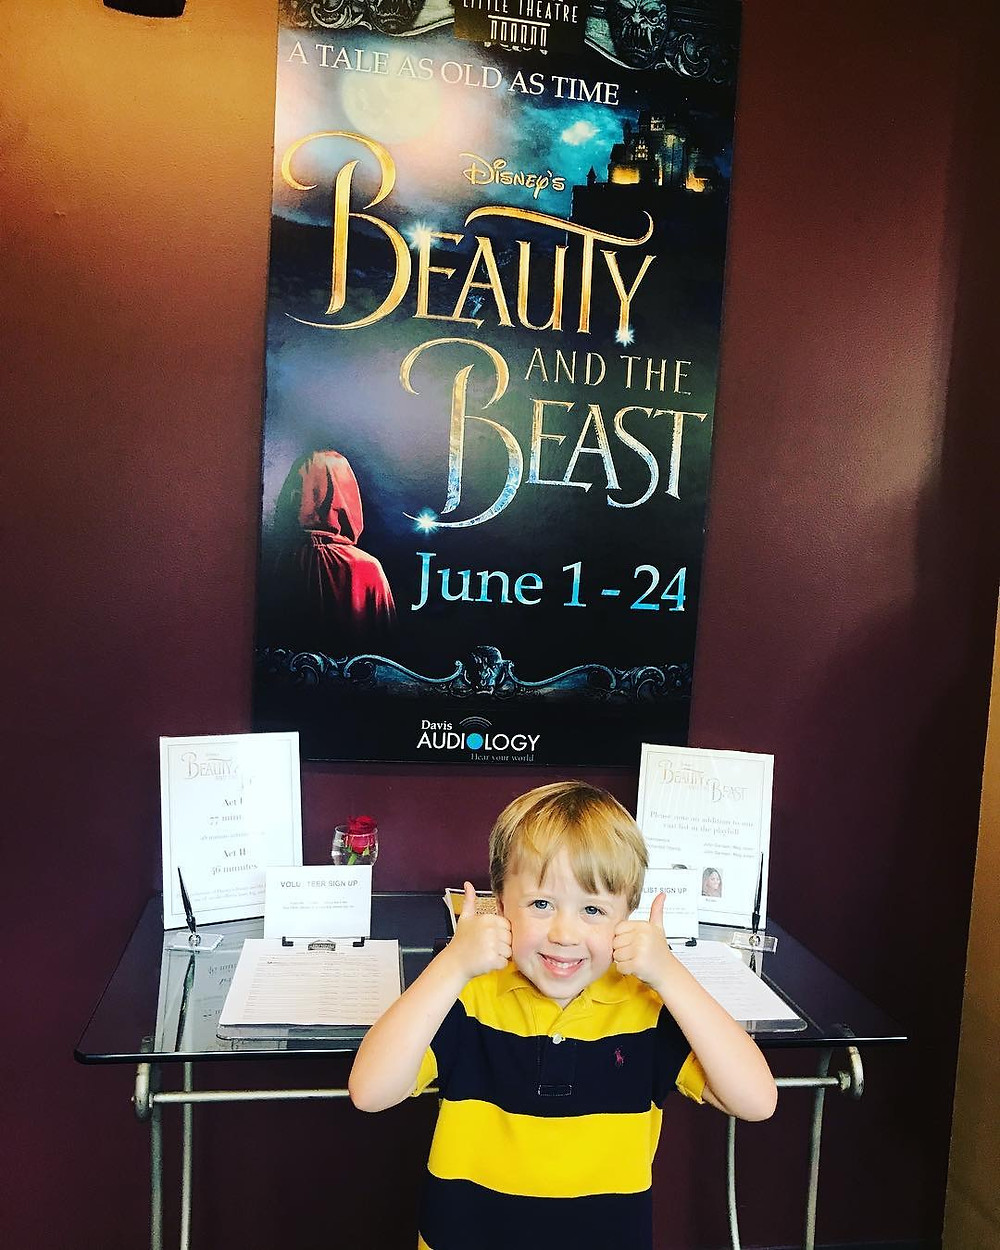 Cohen with the Beauty and the Beast poster at Greenville Theatre.